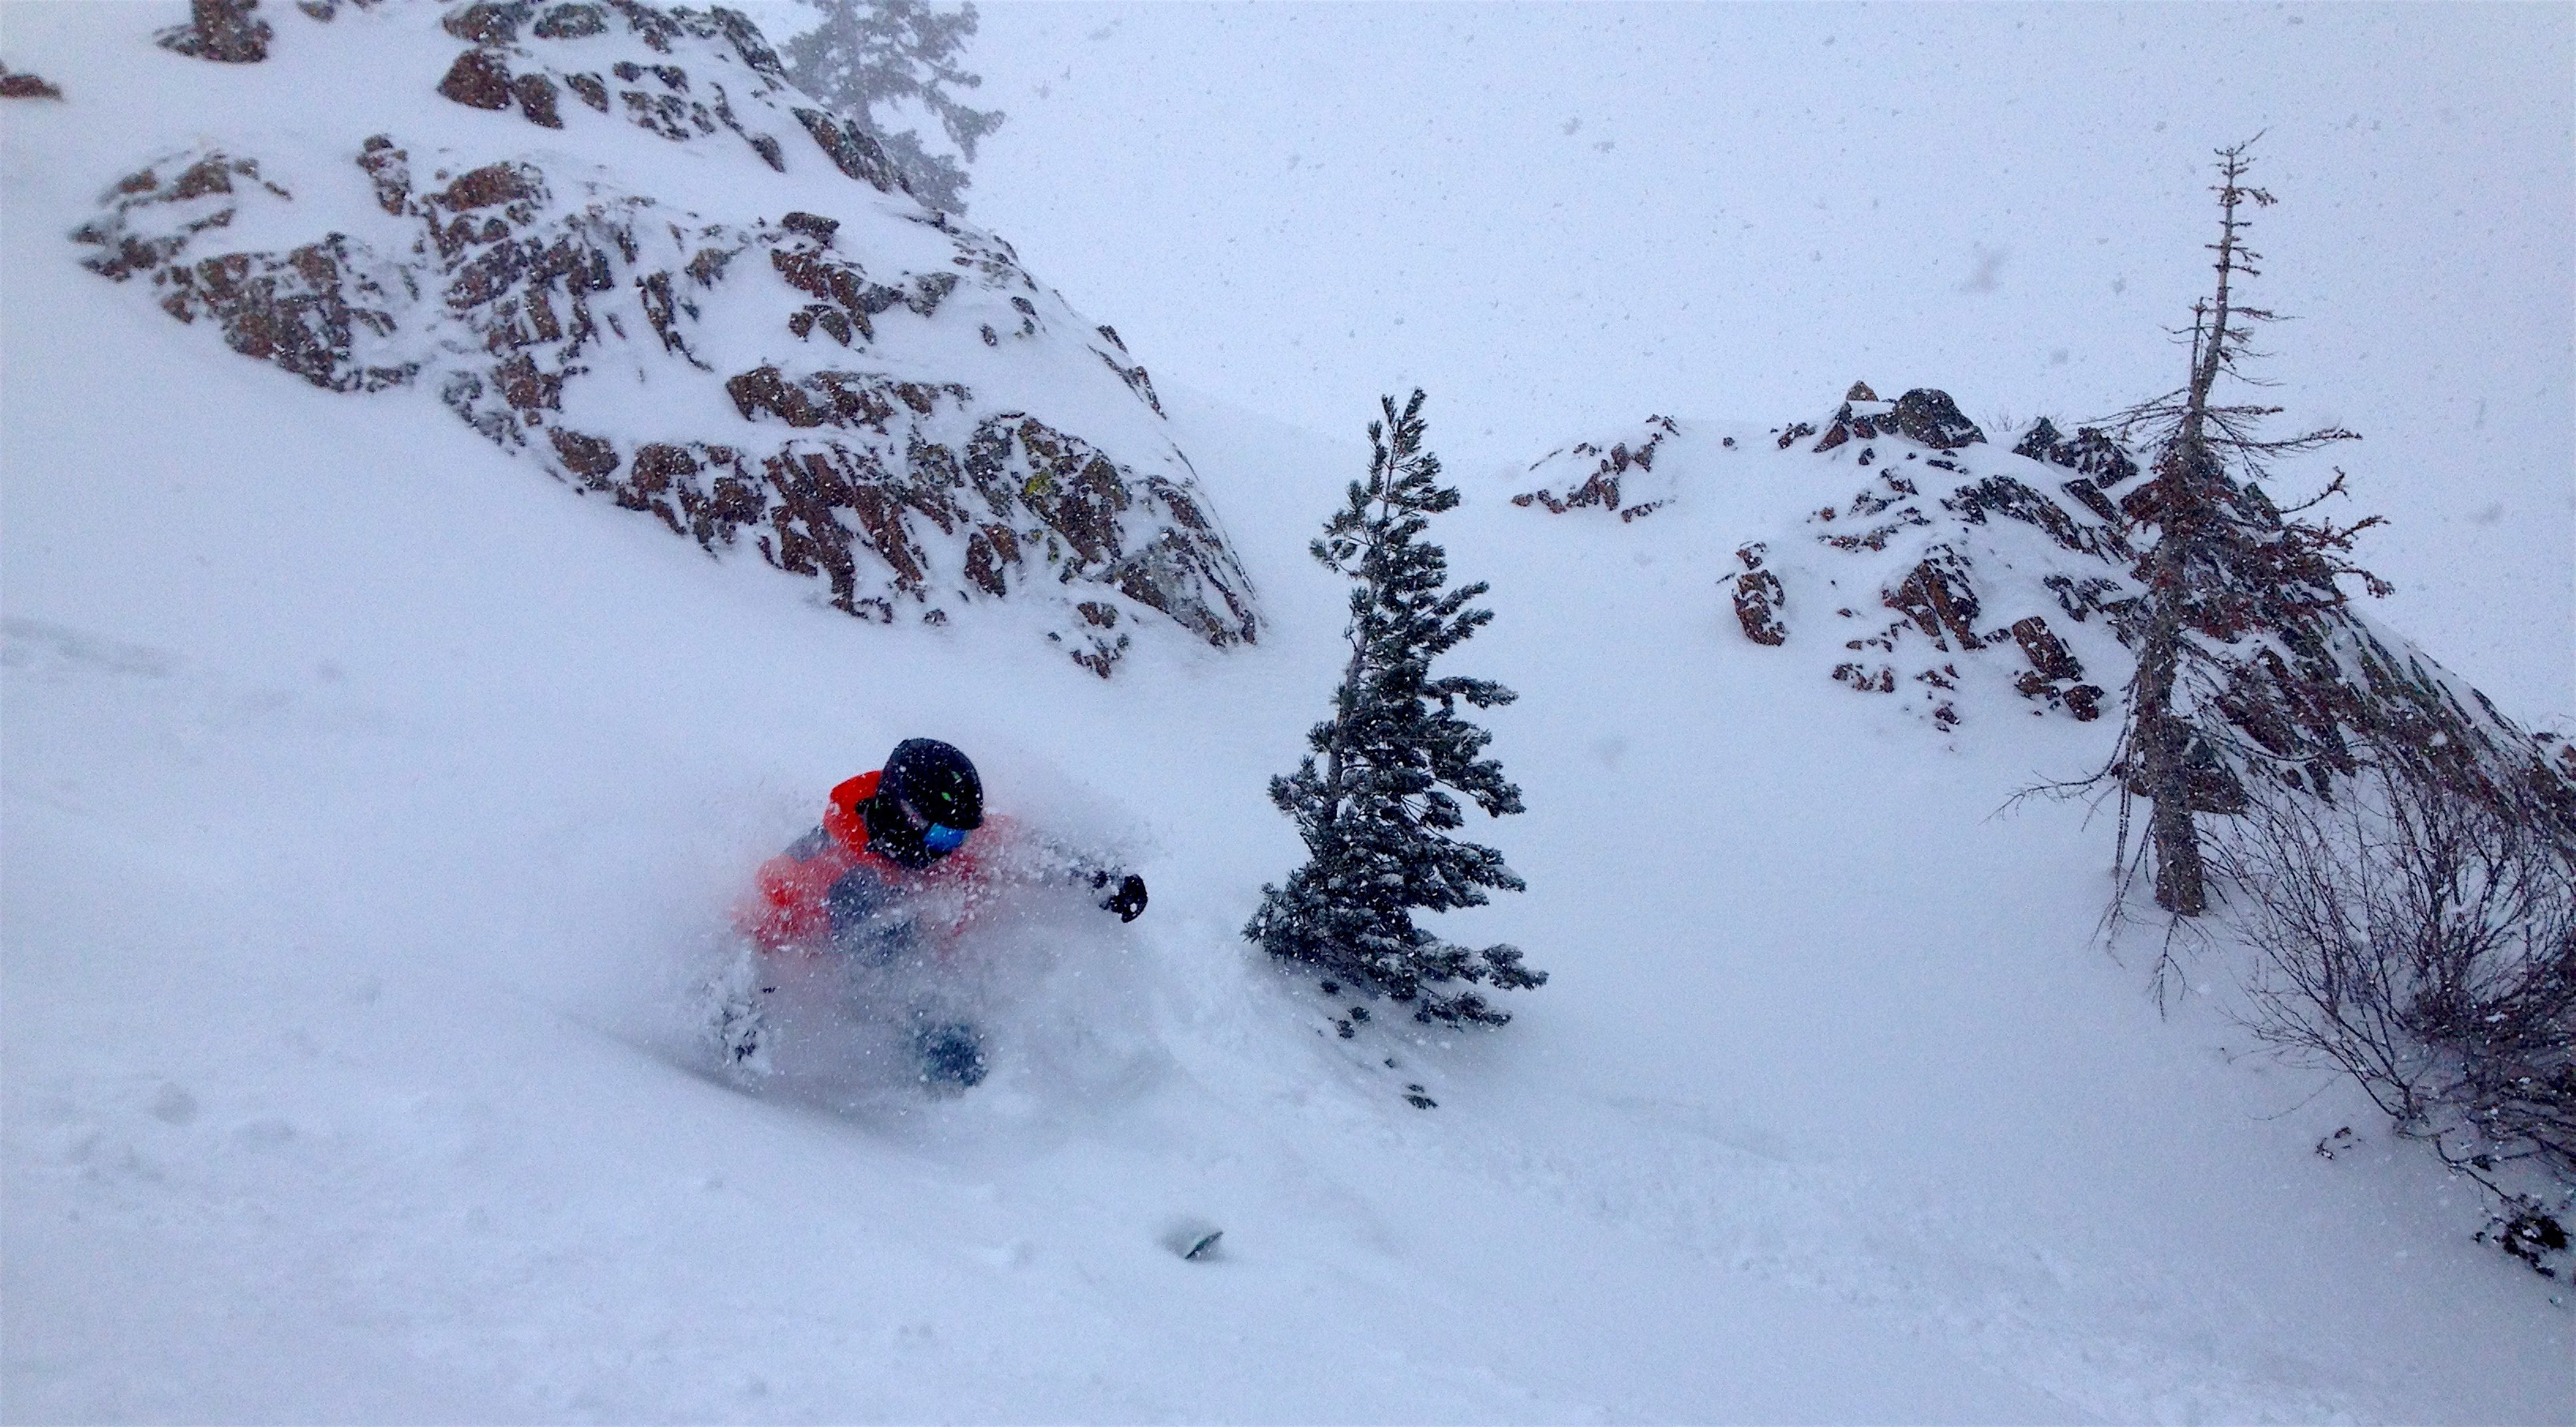 Davi getting snow to the face today. photo: snowbrains